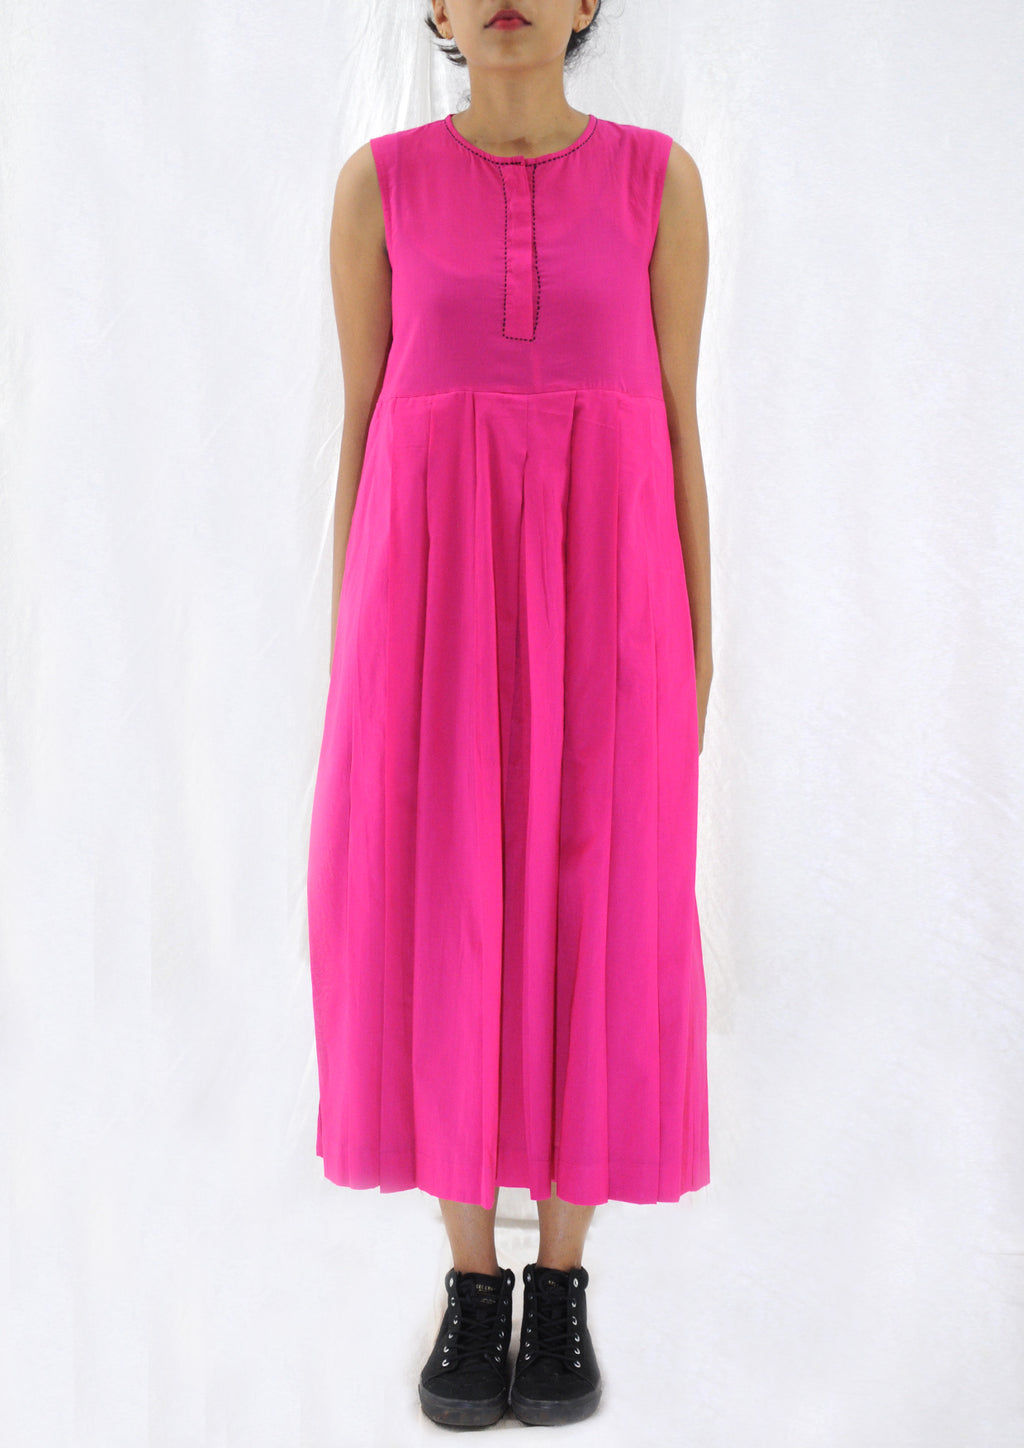 Pink Organic Cotton Dress - NAVYA - Upasana Design Studio